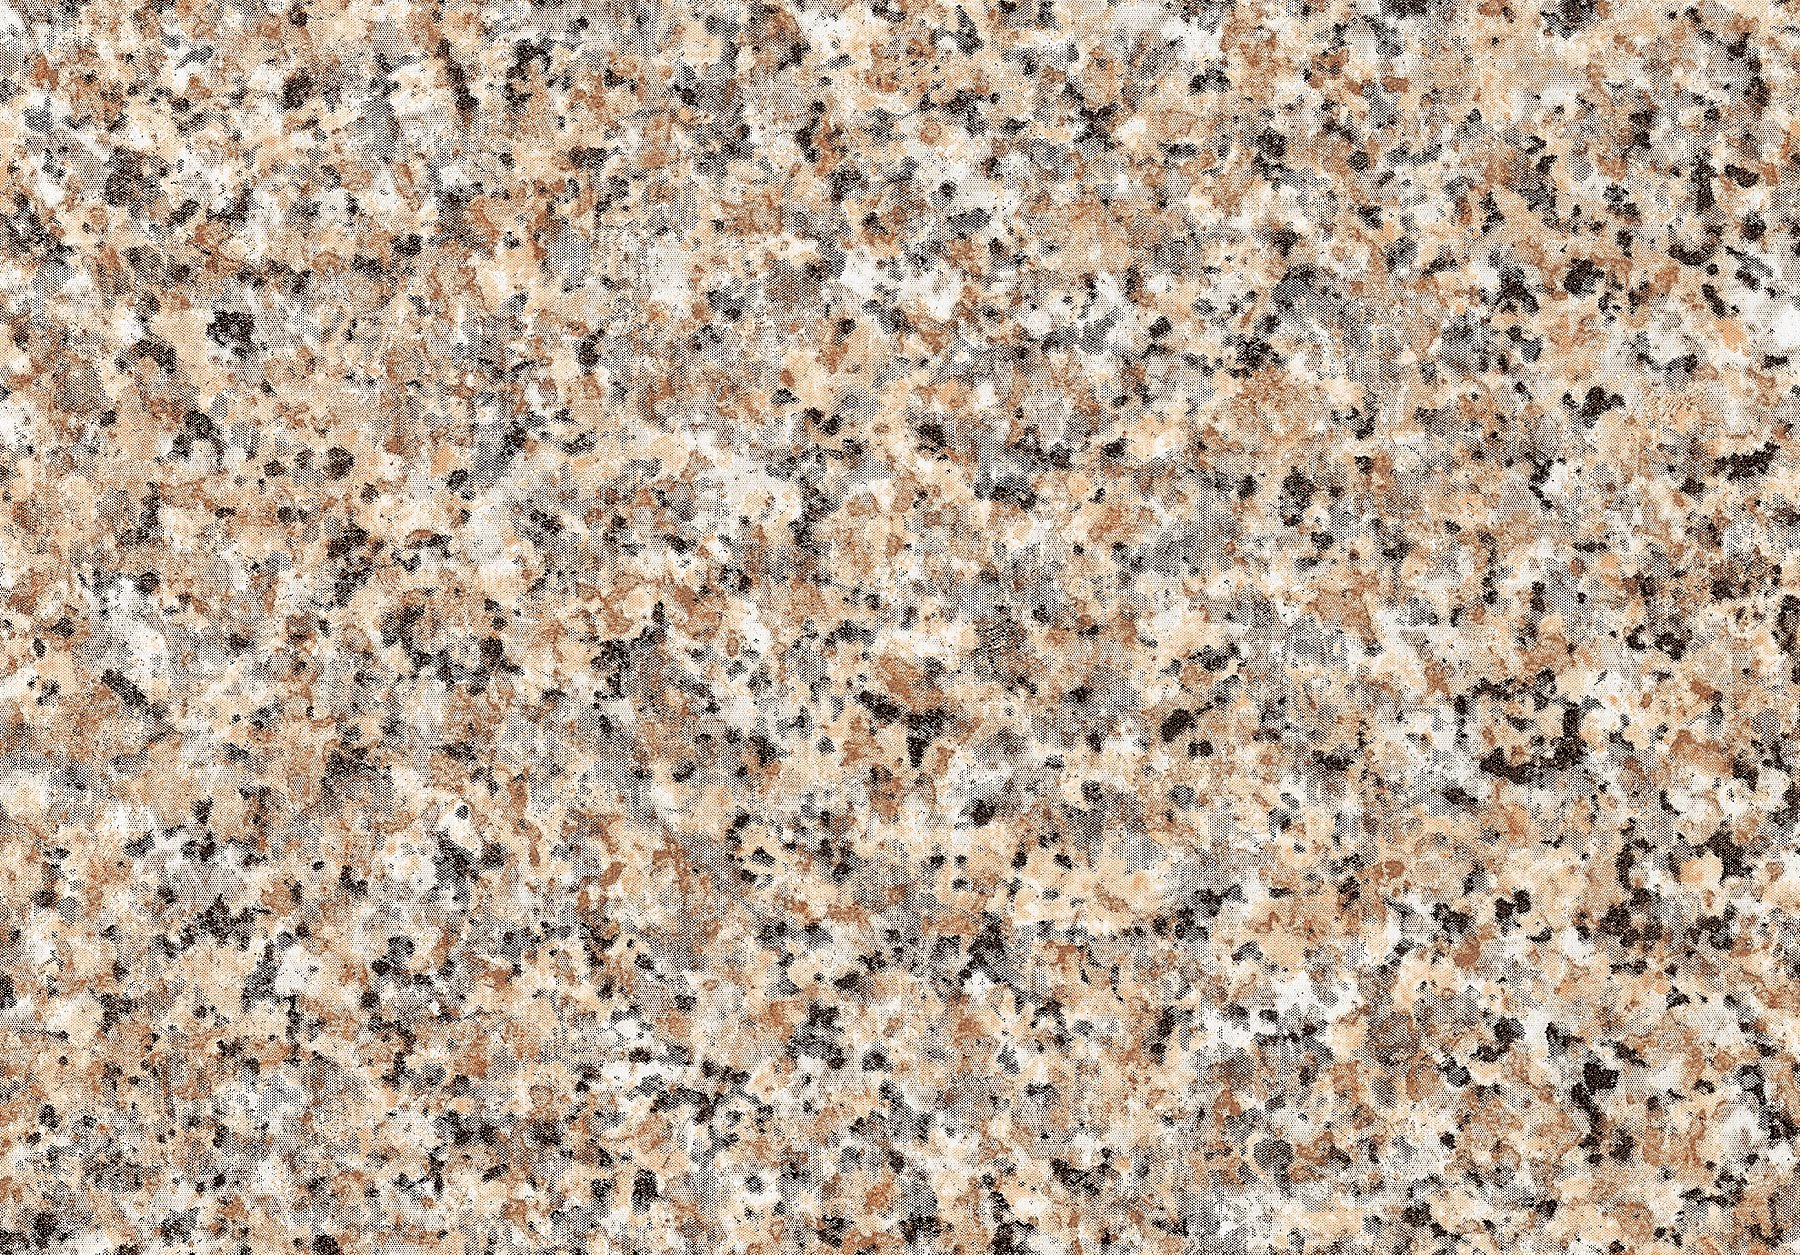 d-c-fix Self-Adhesive Film, Brown Granite, 17.71'' x 78'' Roll, 346-0181